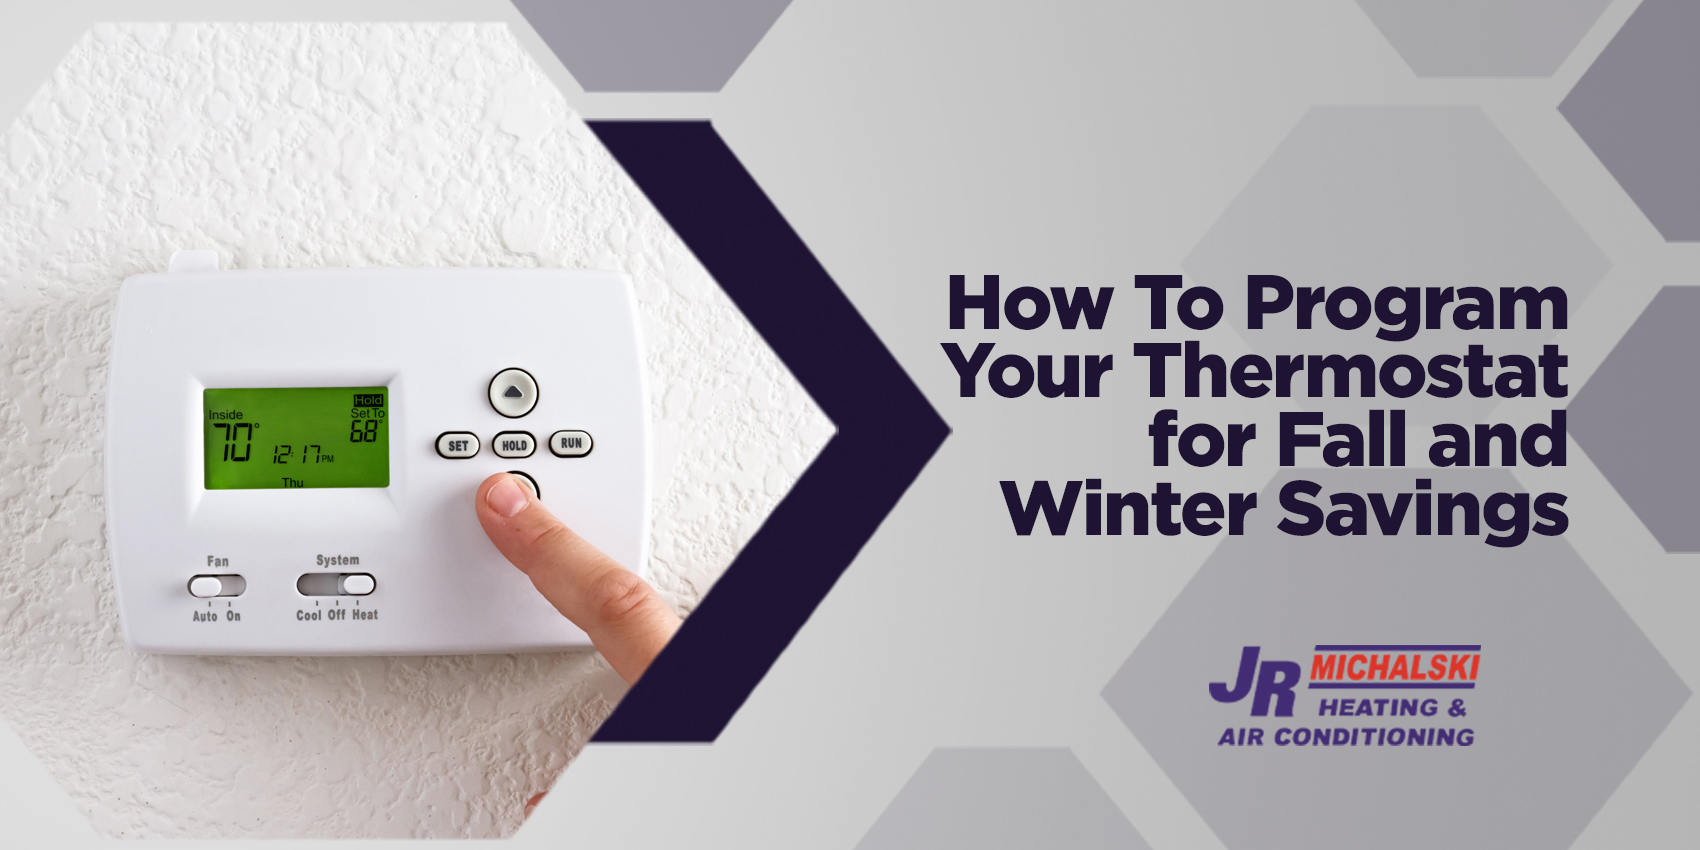 How To Program Your Thermostat for Fall and Winter Savings